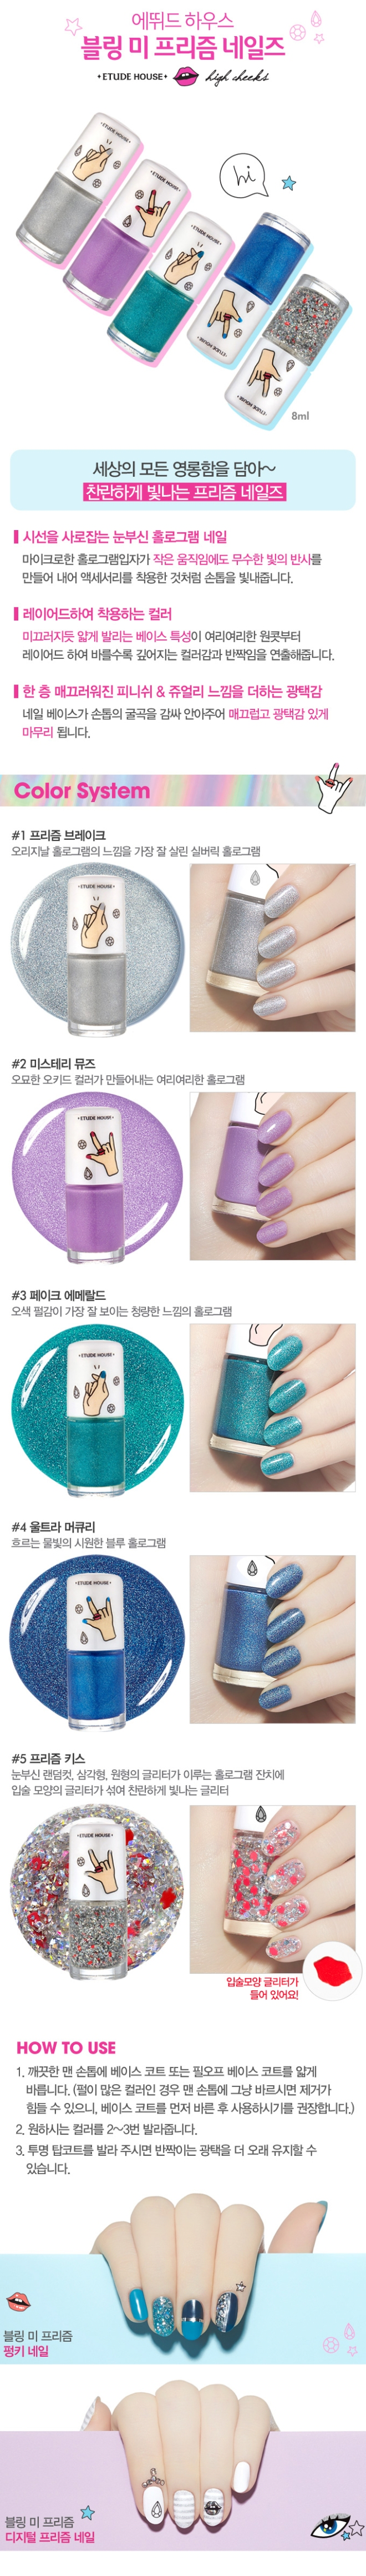 (Etude House x High Cheeks - Bling Me Prism Play Nails) Credit: Etude House Korea website